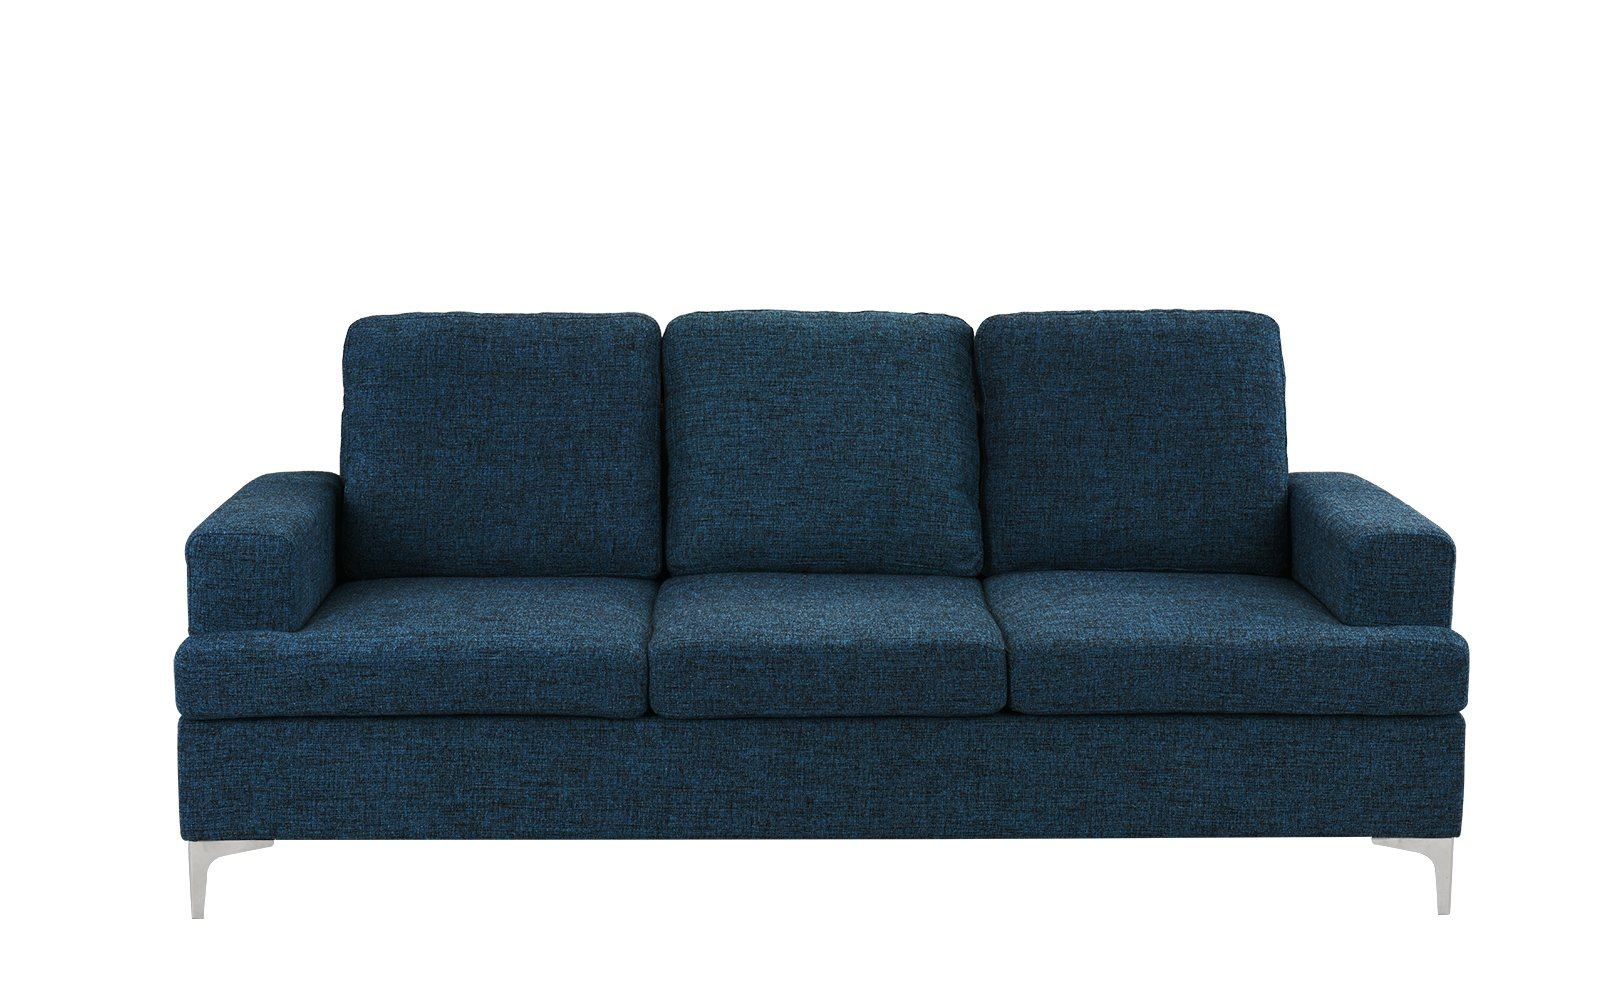 delos mid-century small space linen sofa - $349.99  this one looks super comfy. it's also big enough to actually lie down on.